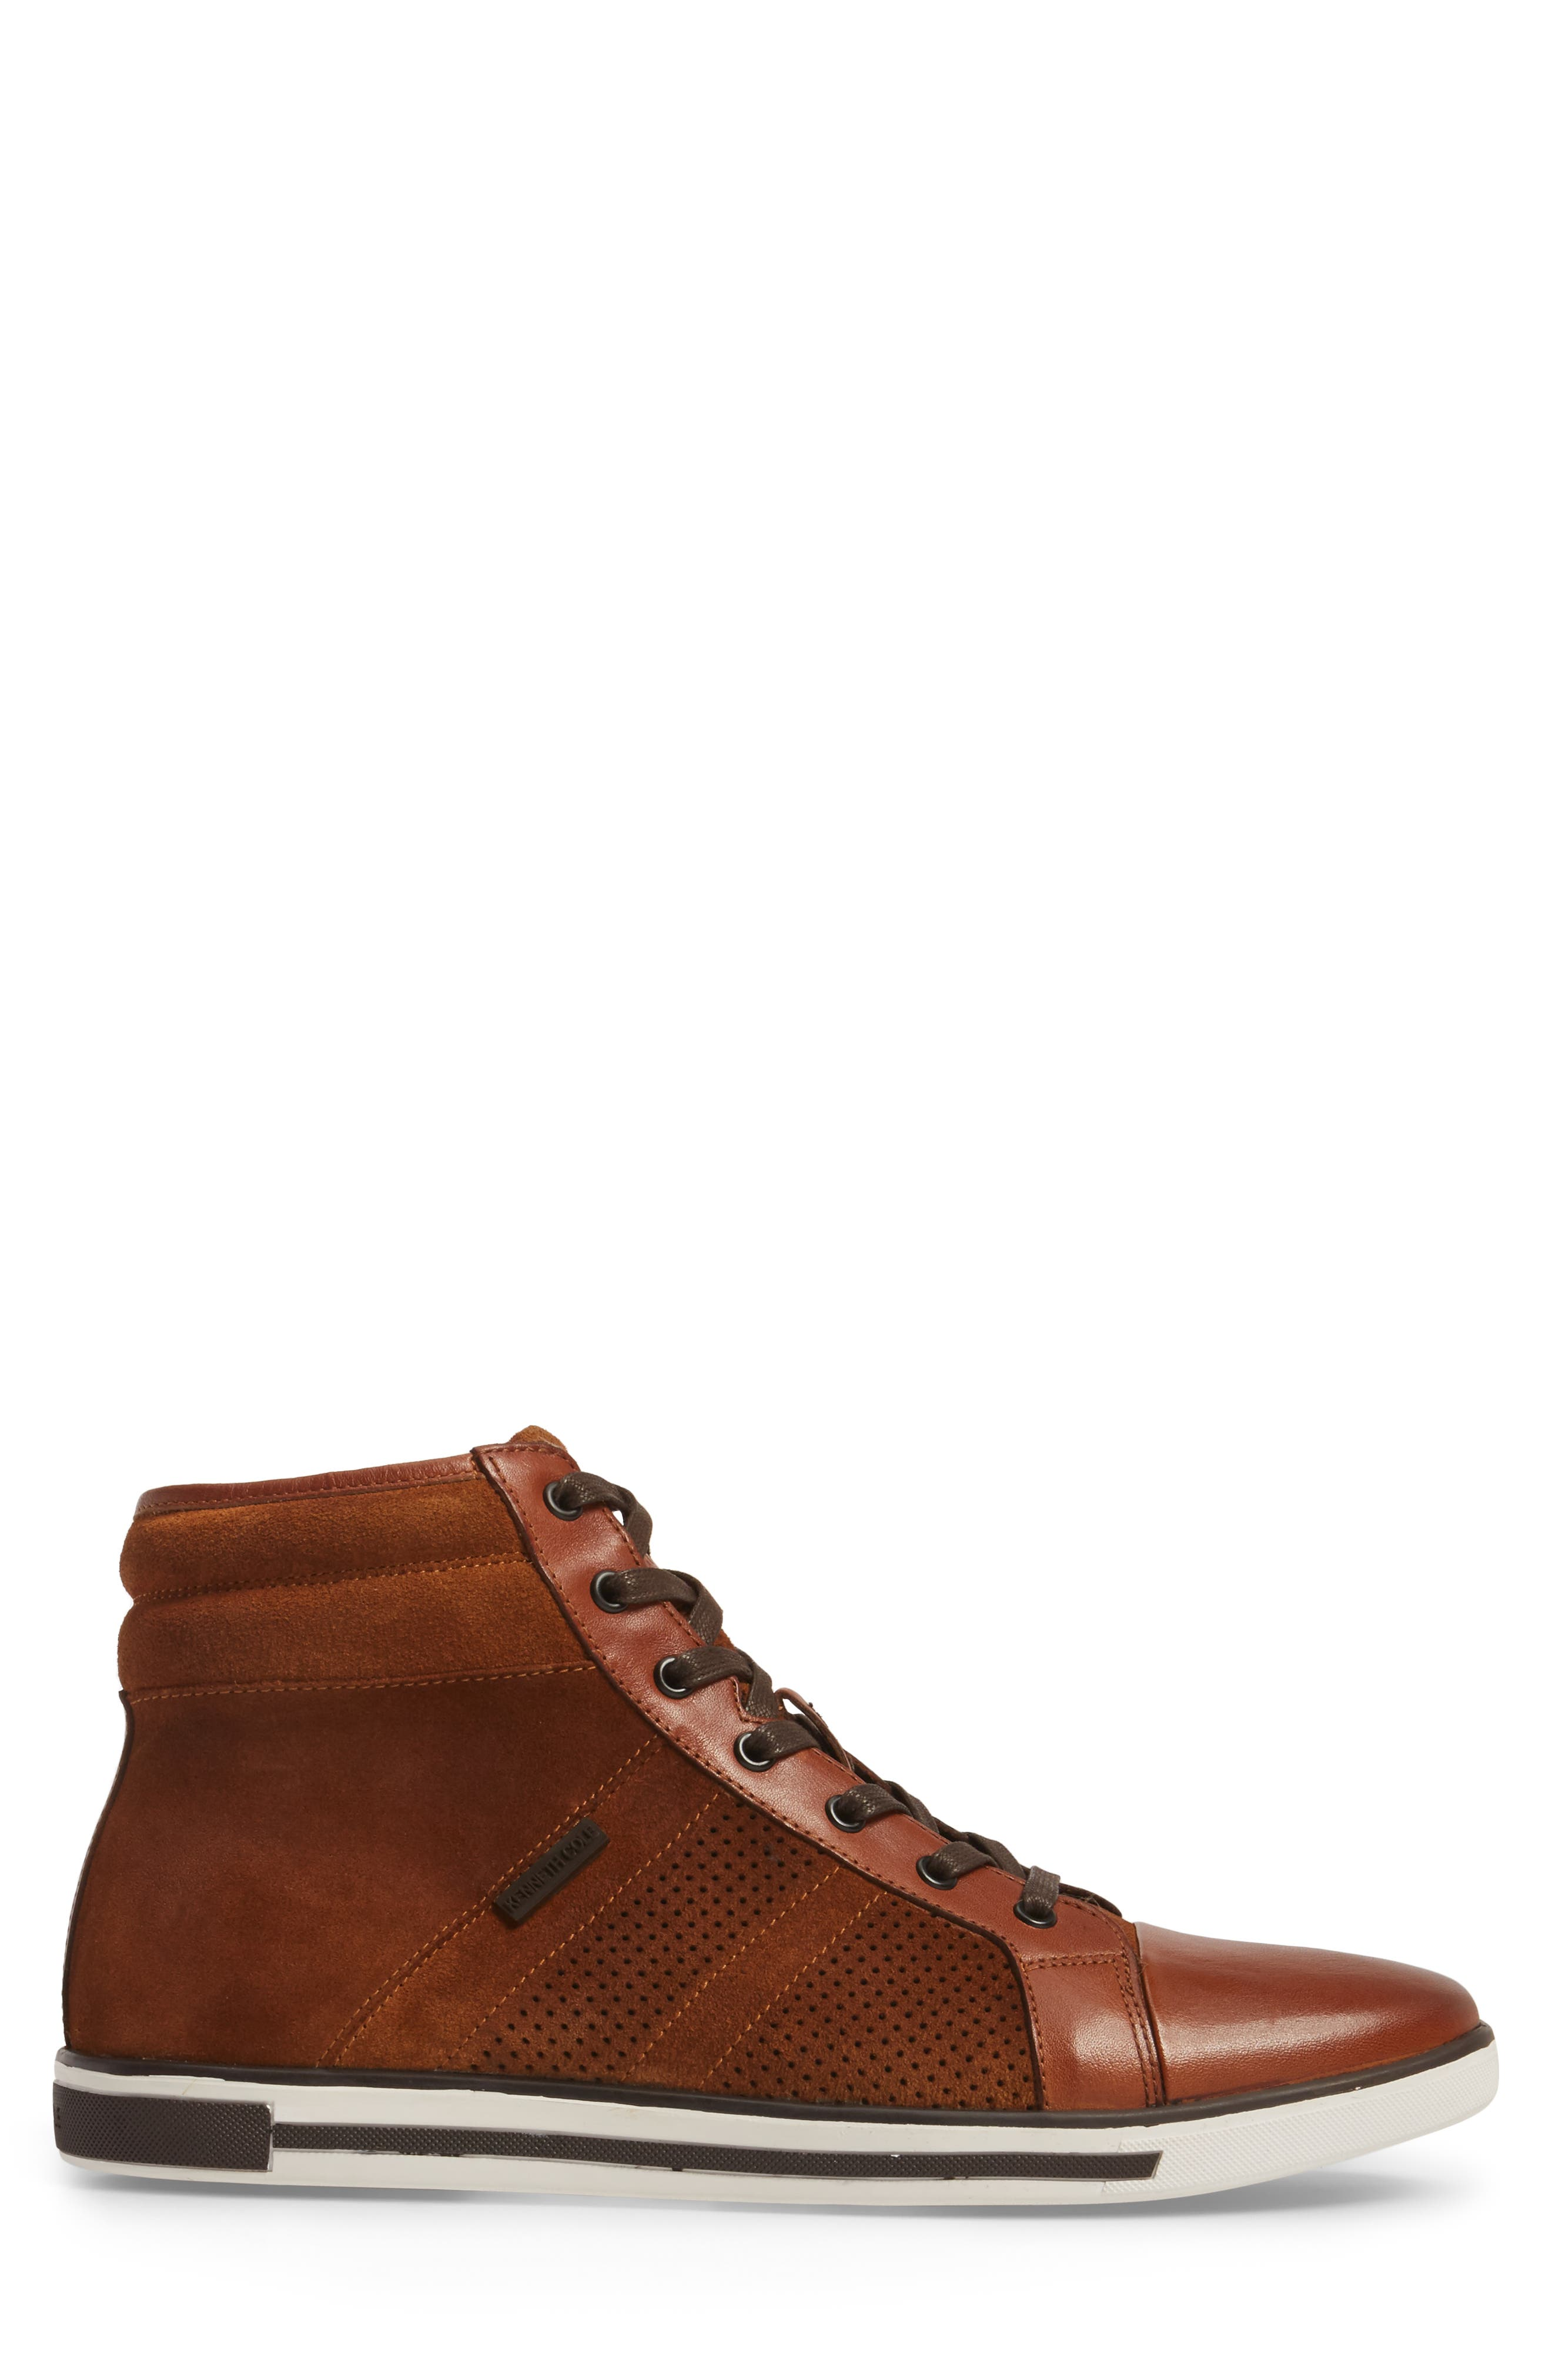 Initial Point Sneaker,                             Alternate thumbnail 8, color,